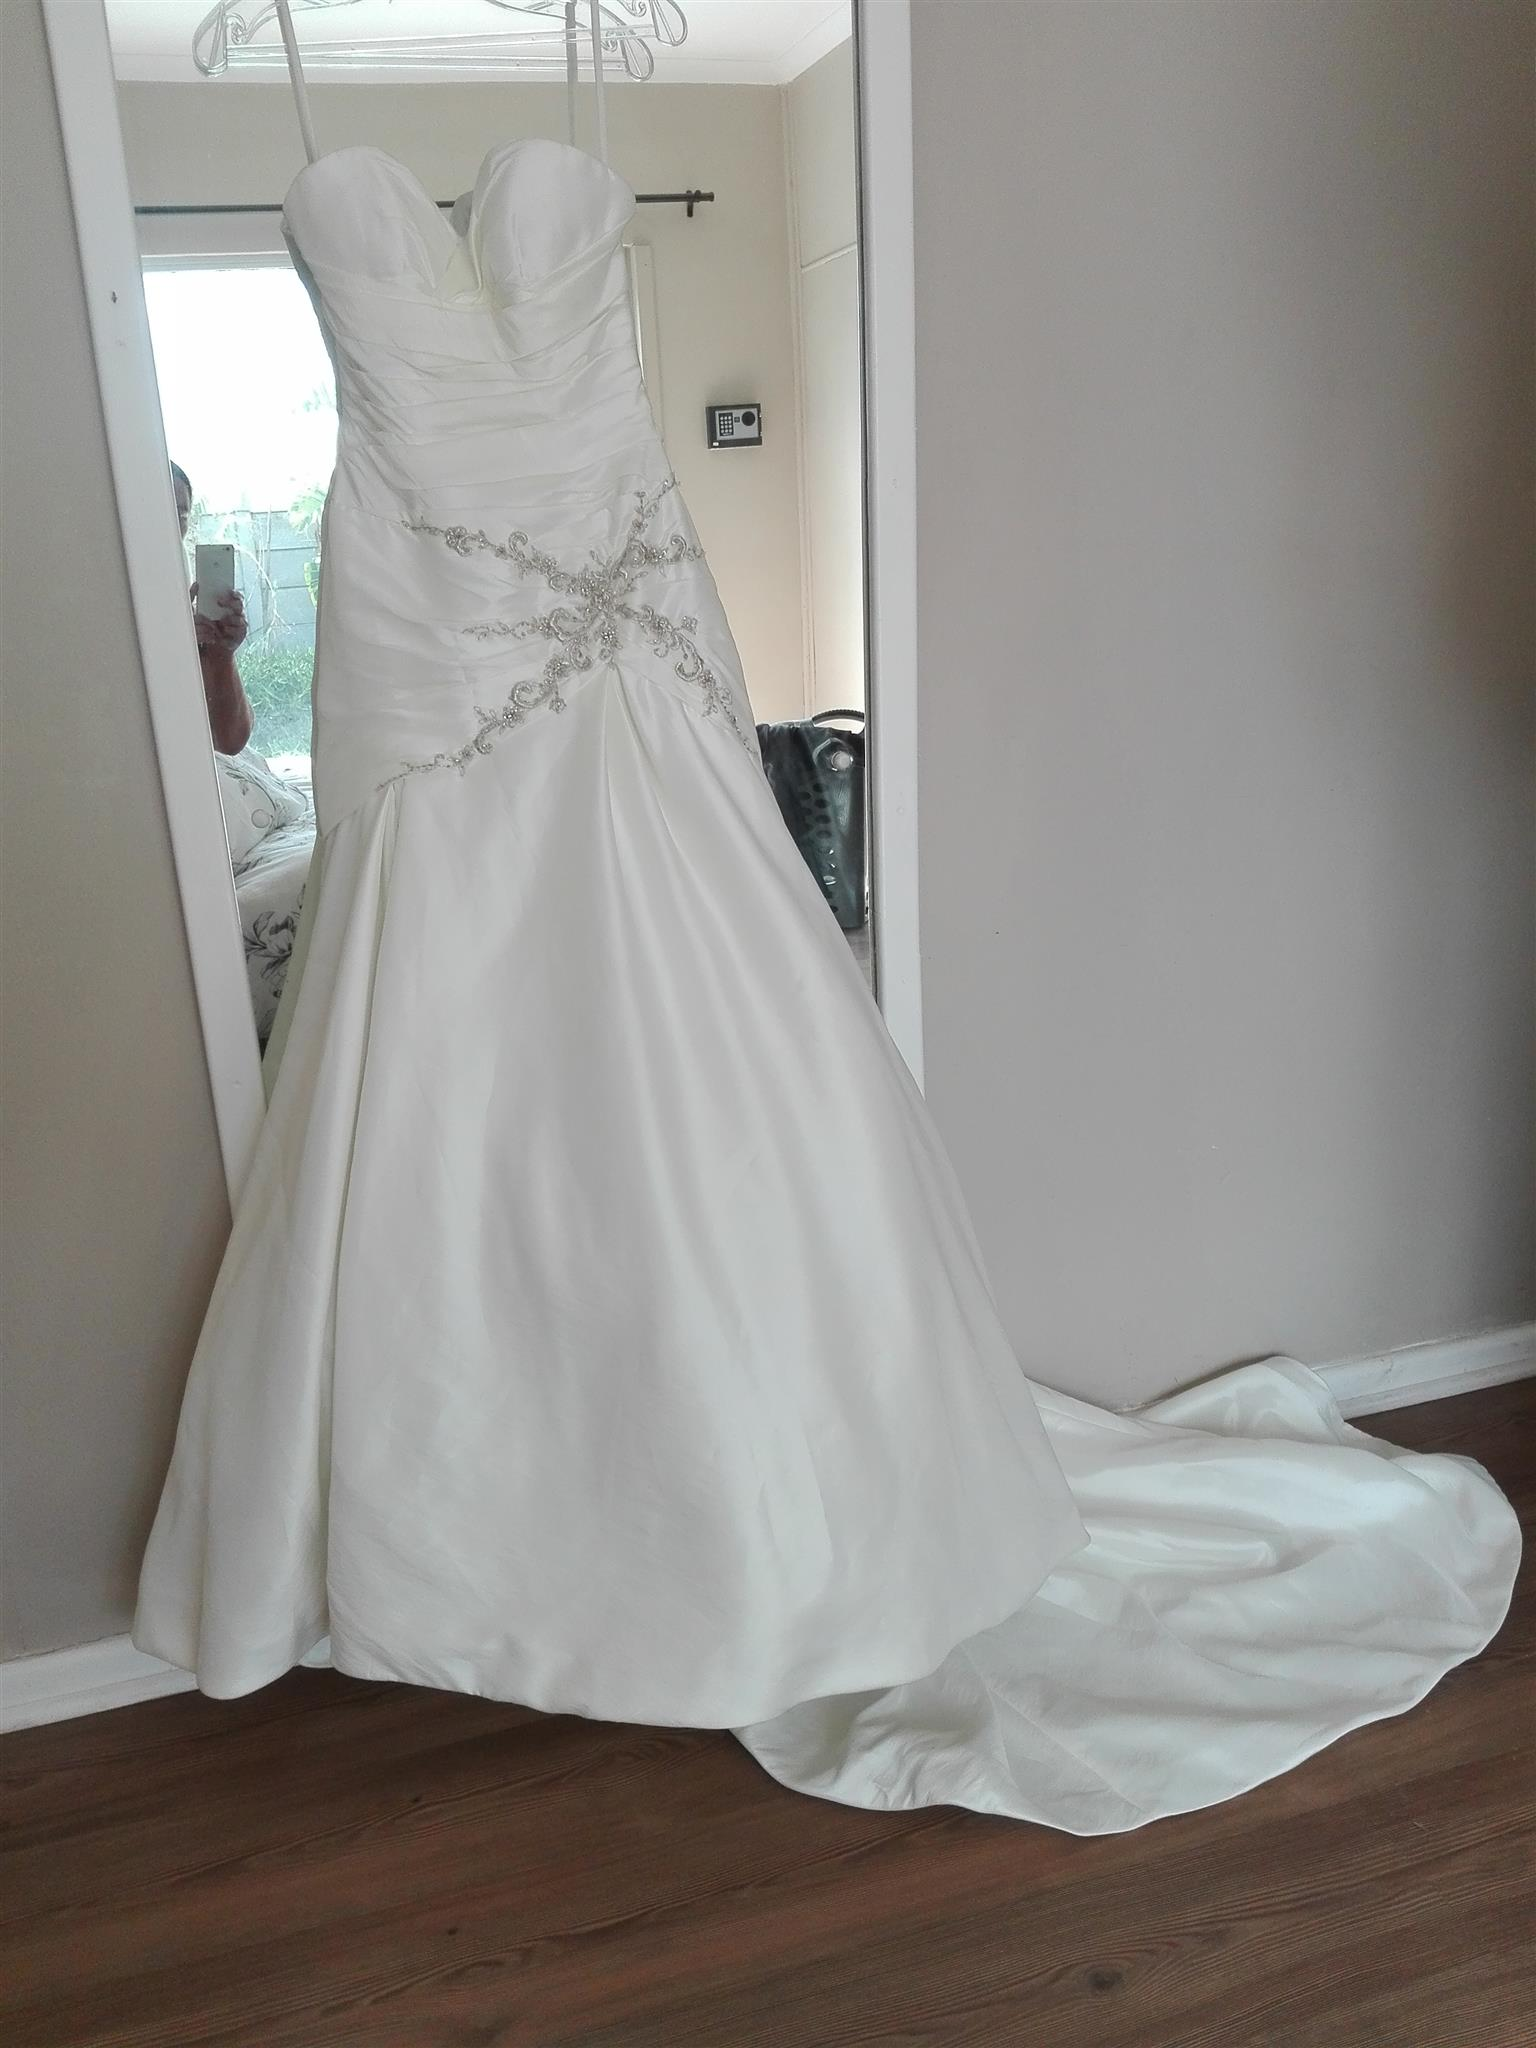 Stunning ivory wedding dress for hire/sale